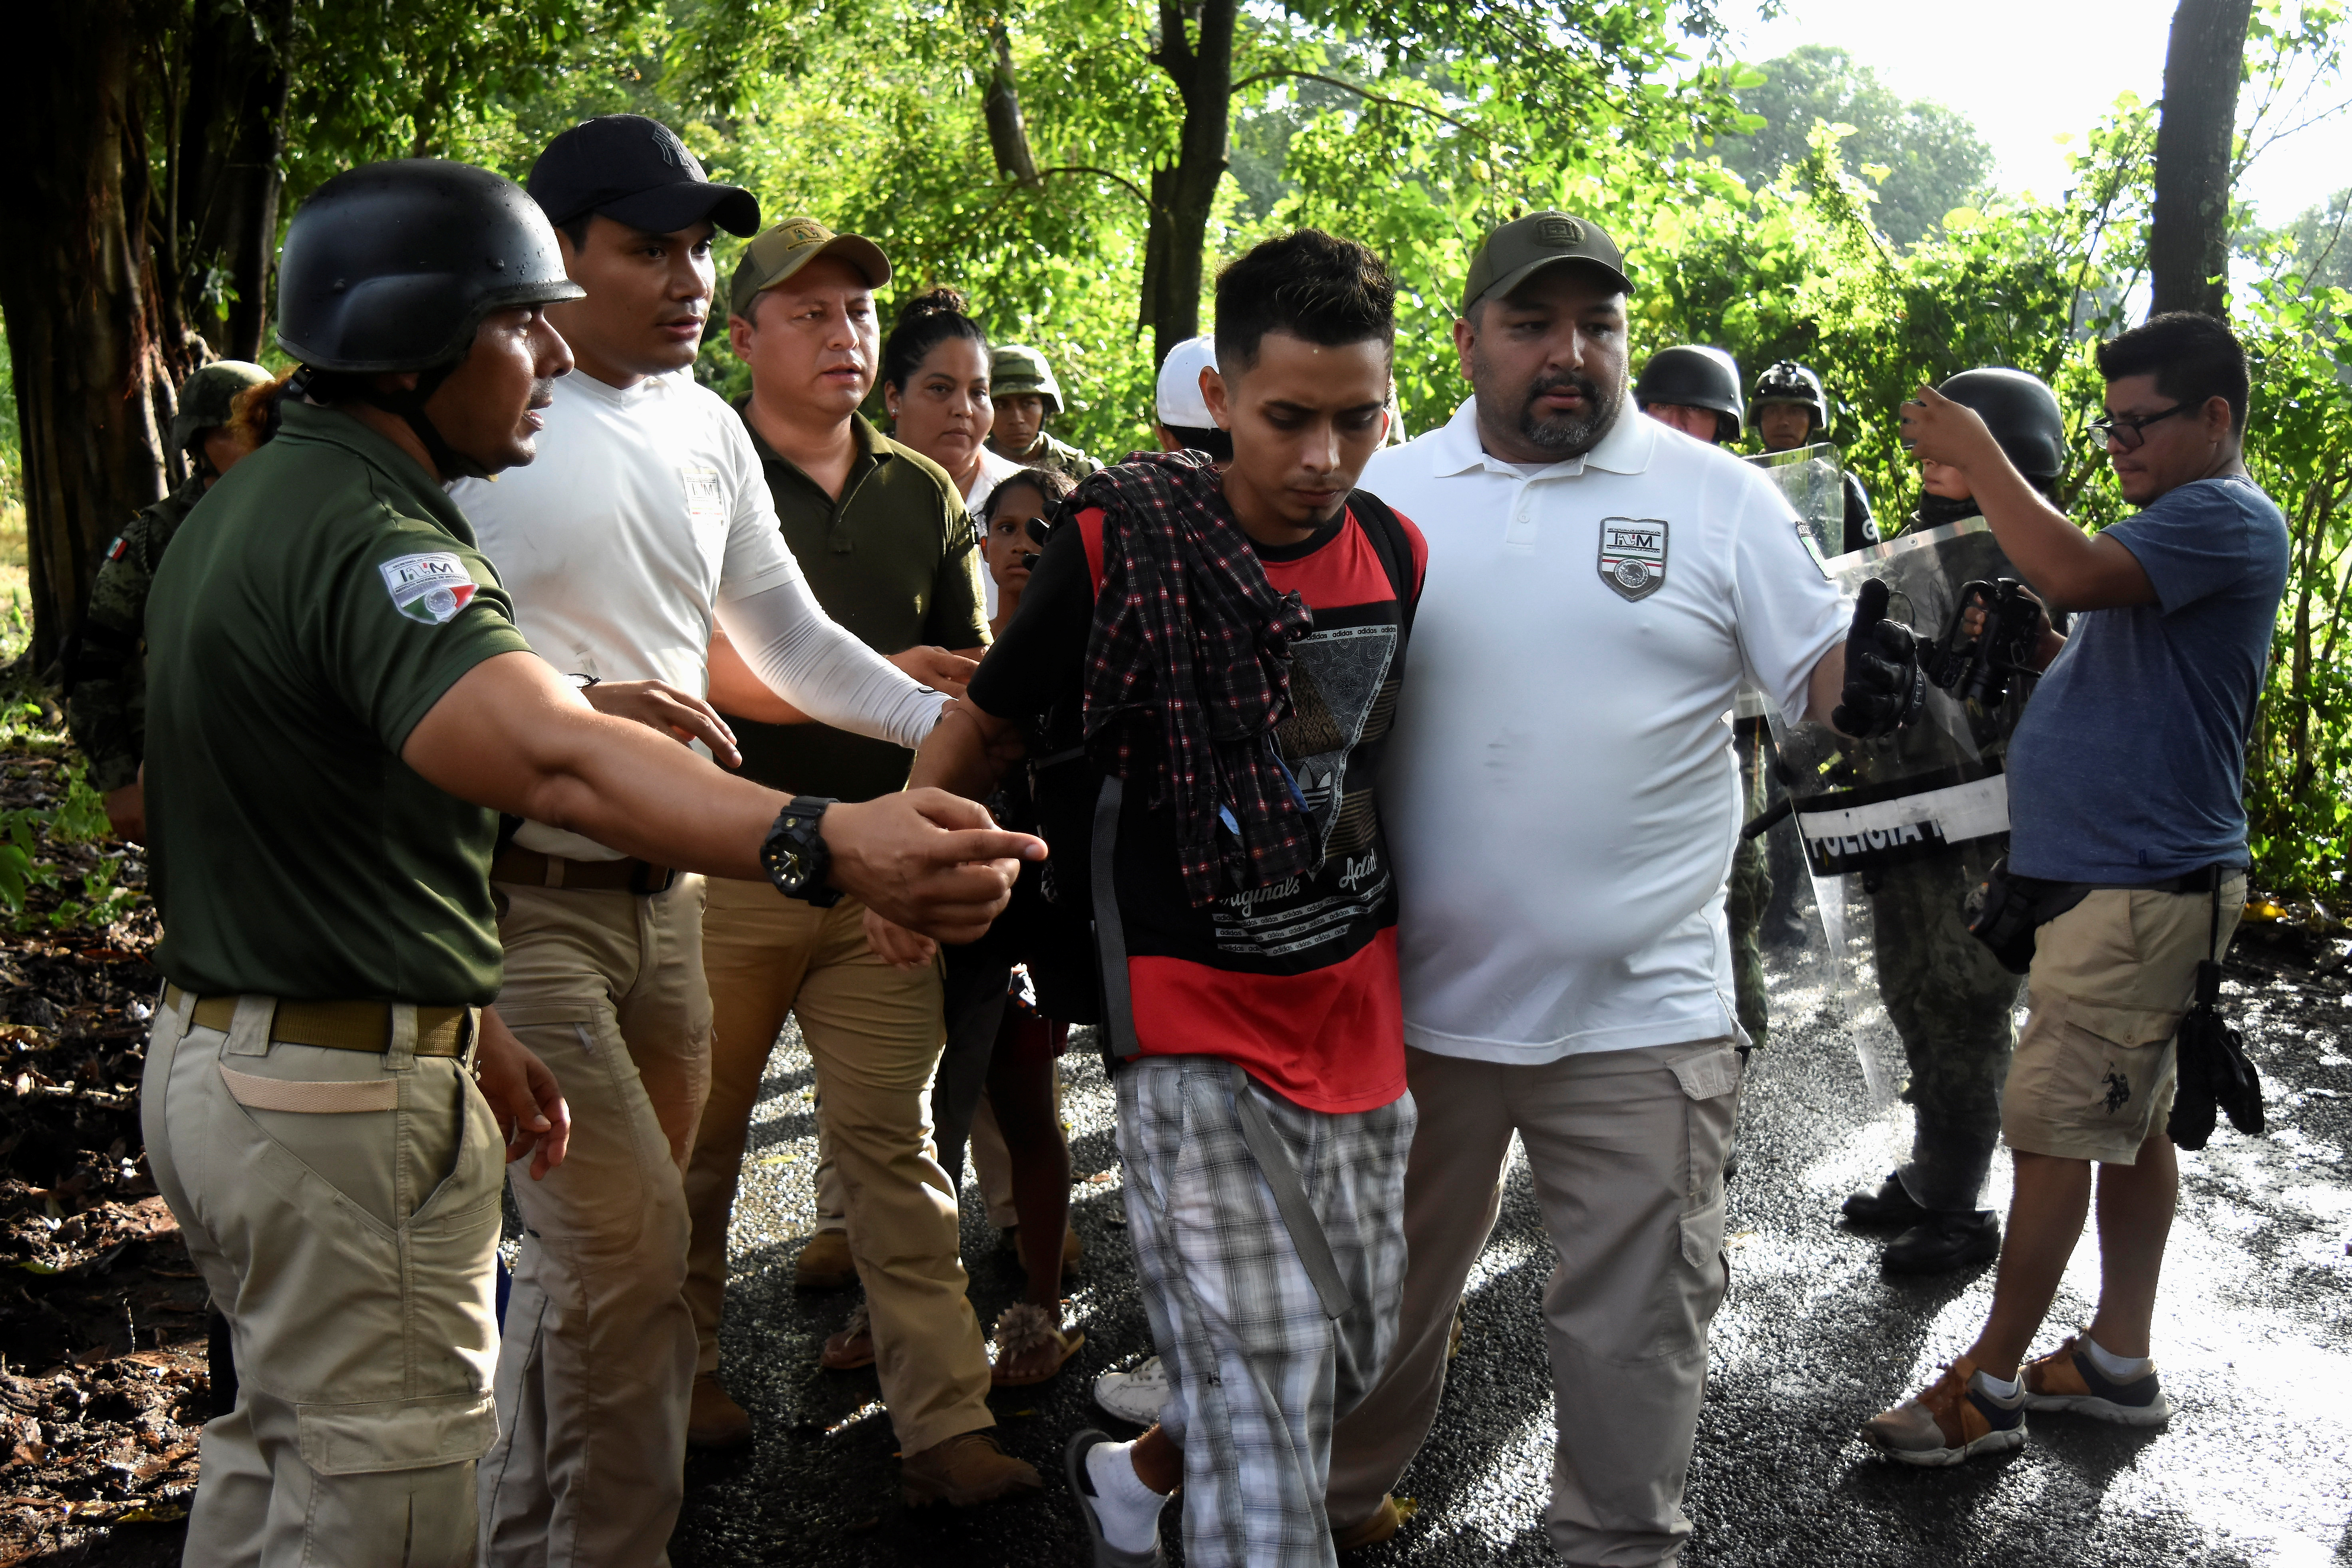 Agents of the National Migration Institute (INM) detain a migrant during an operation by the National Guard to halt a caravan of migrants from Africa, the Caribbean and Central America, hours after they embarked toward the United States, in Tuzantan